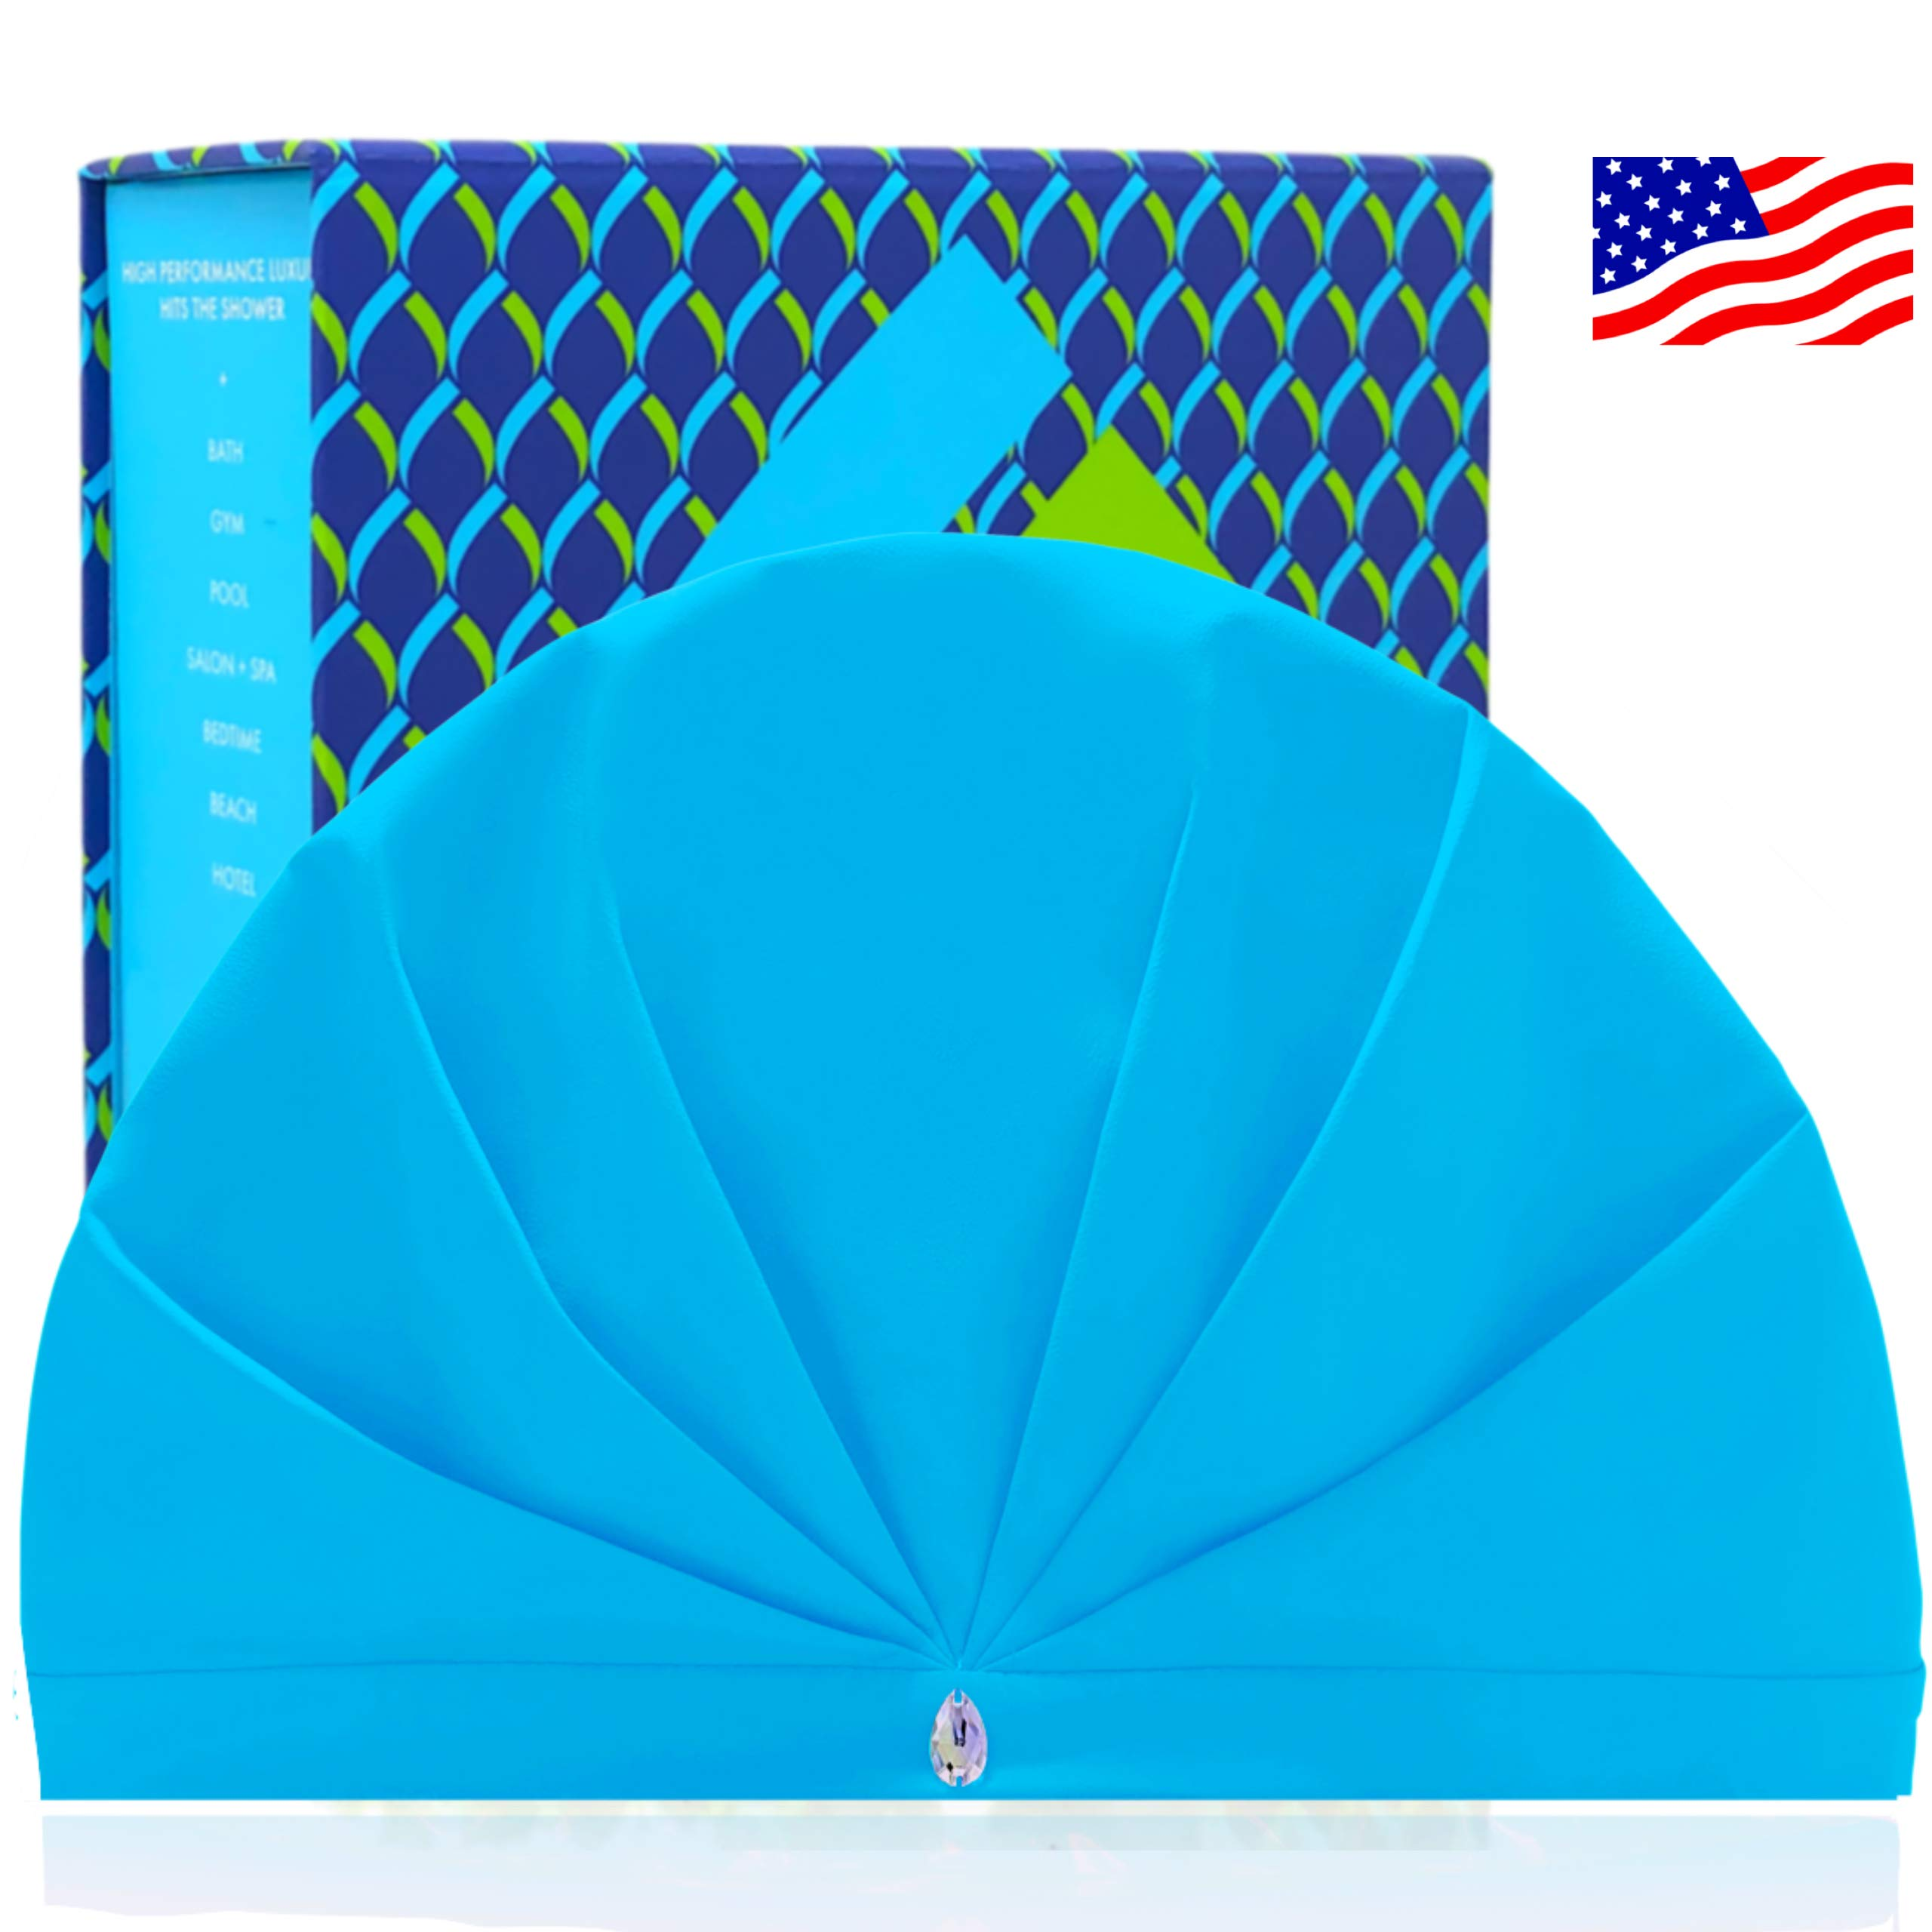 SUPERPOWER TURBAN The Only Professional Waterproof Breathable Shower Cap For Women   Adjustable No Slip Band   Fabric Wicks Humidity To Keep Hair Dry + Stop Frizz   Made in USA   Swarovski   GIFT box